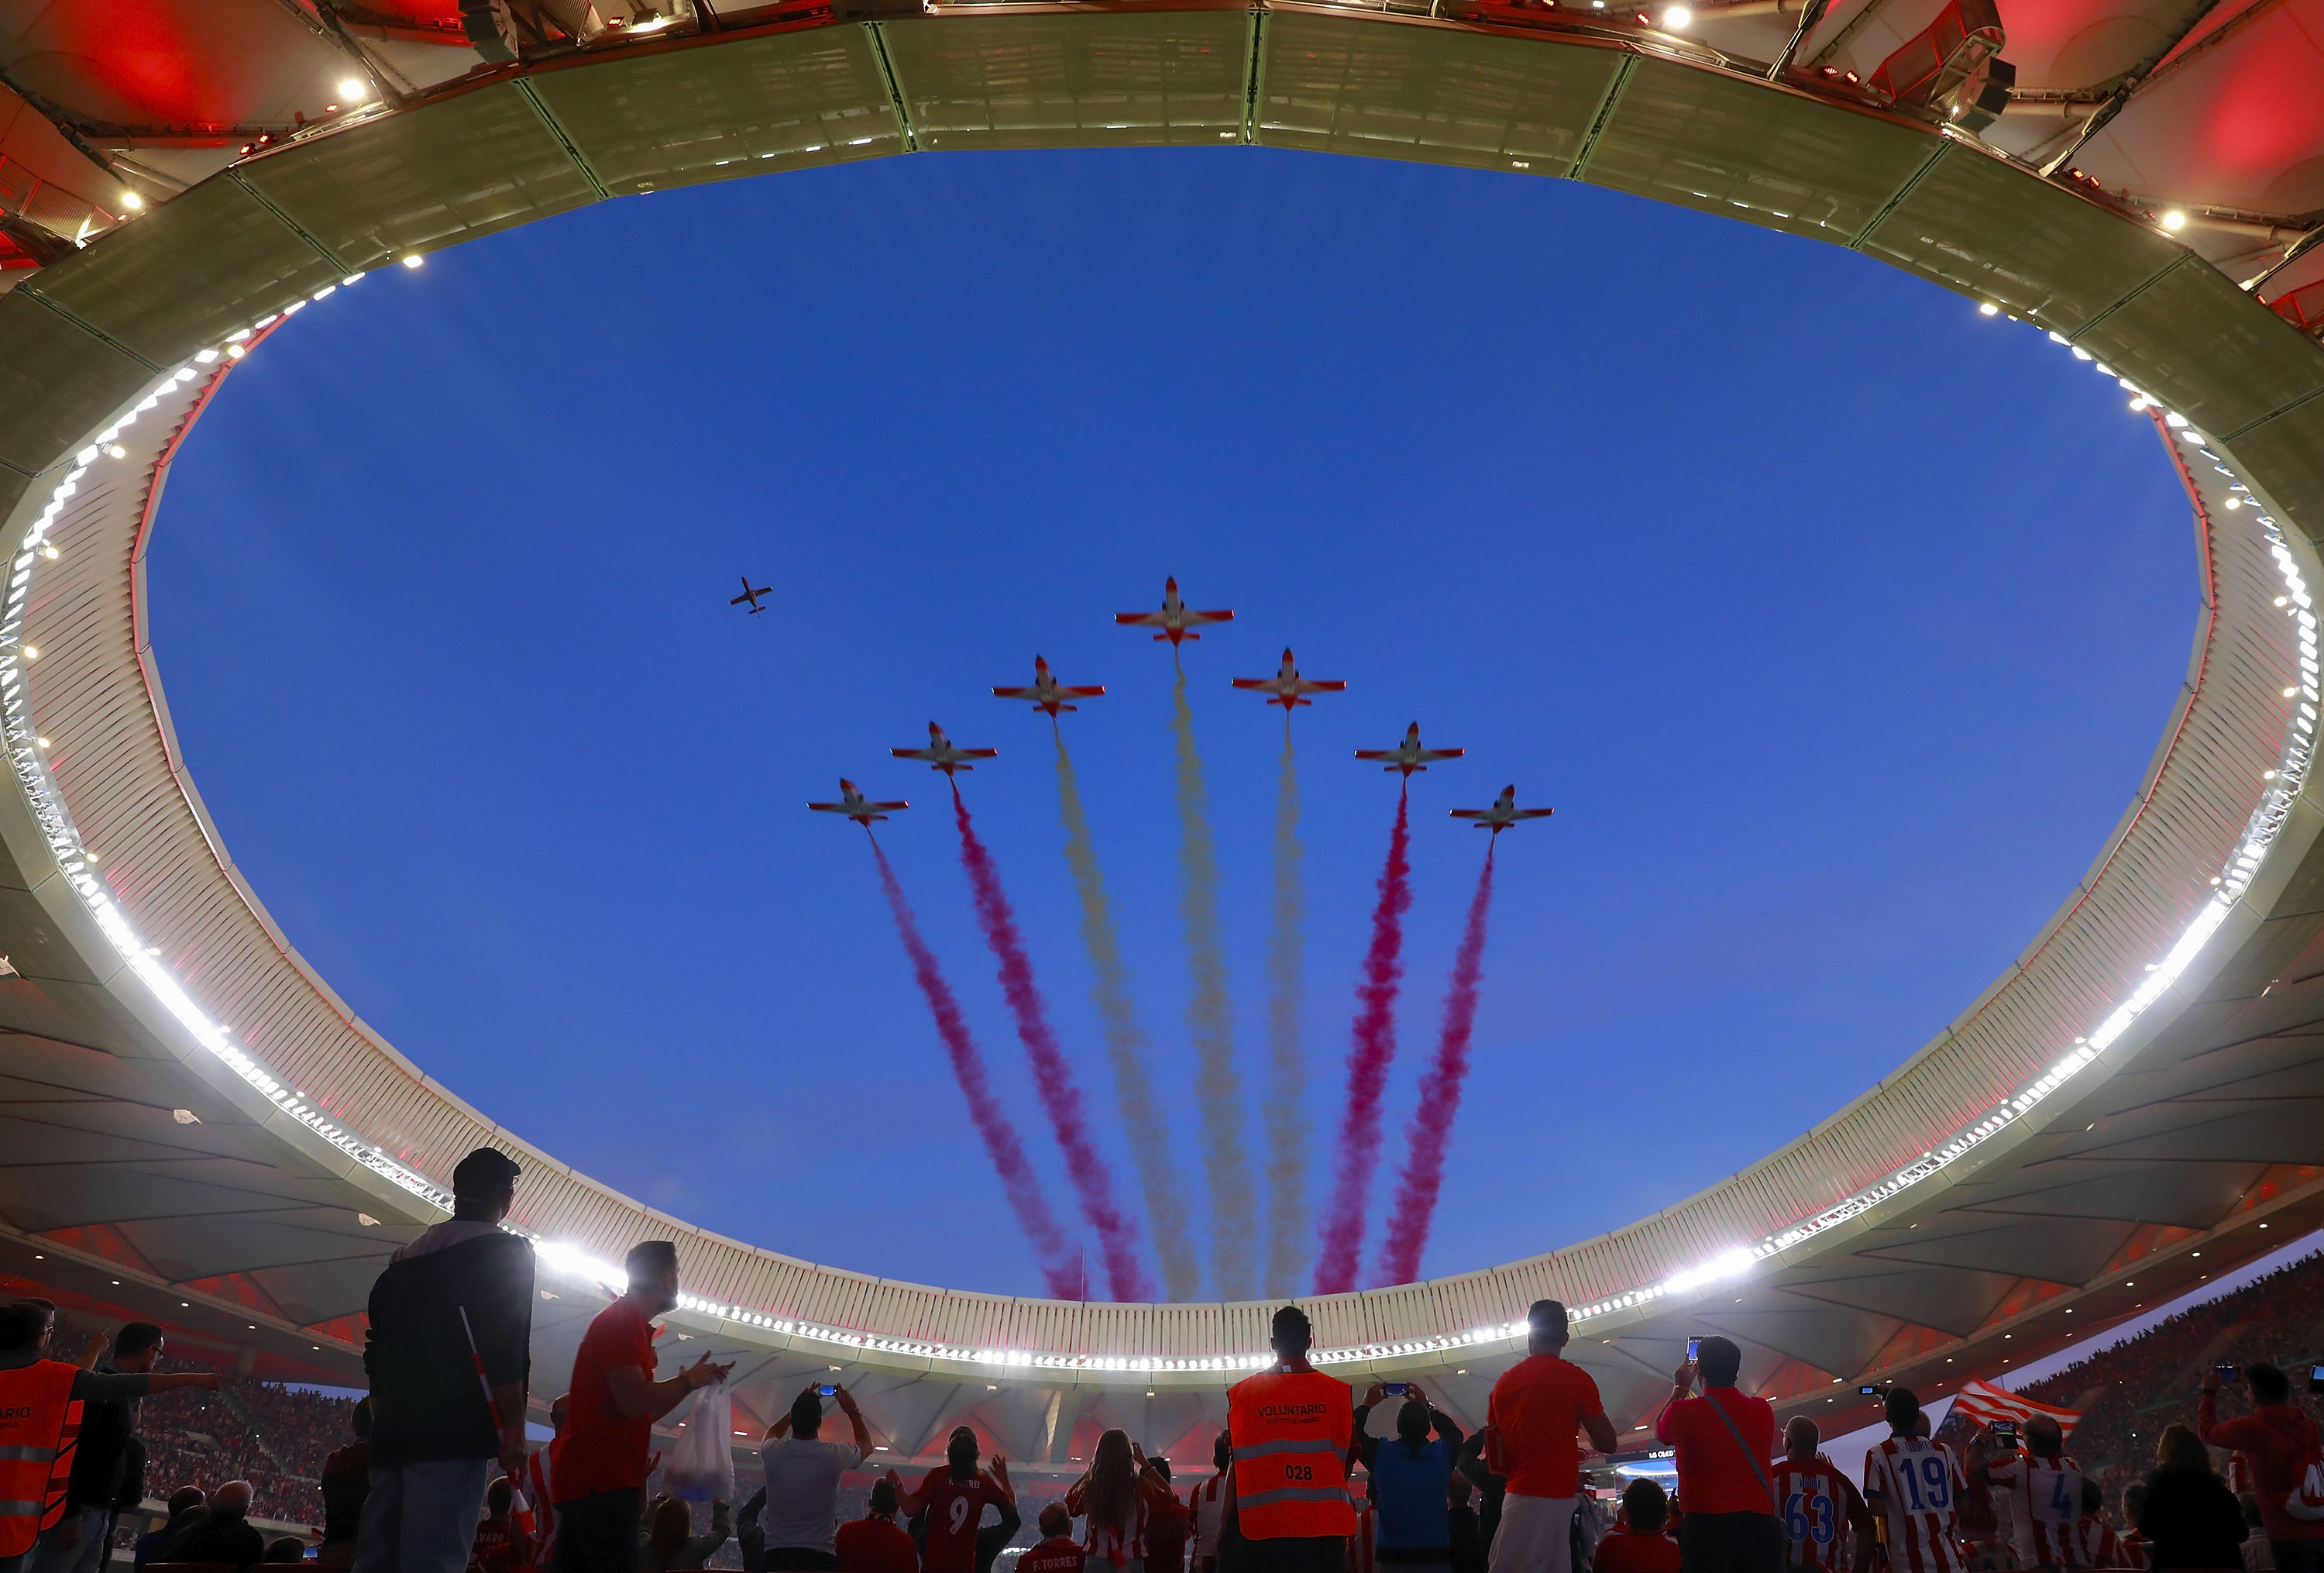 MADRID, SPAIN - SEPTEMBER 16: Spanish display team 'Eagle Patrol' fly over Estadio Wanda Metropolitano prior to start the La Liga match between Club Atletico Madrid and Malaga CF on September 16, 2017 in Madrid, Spain. (Photo by Gonzalo Arroyo Moreno/Getty Images)